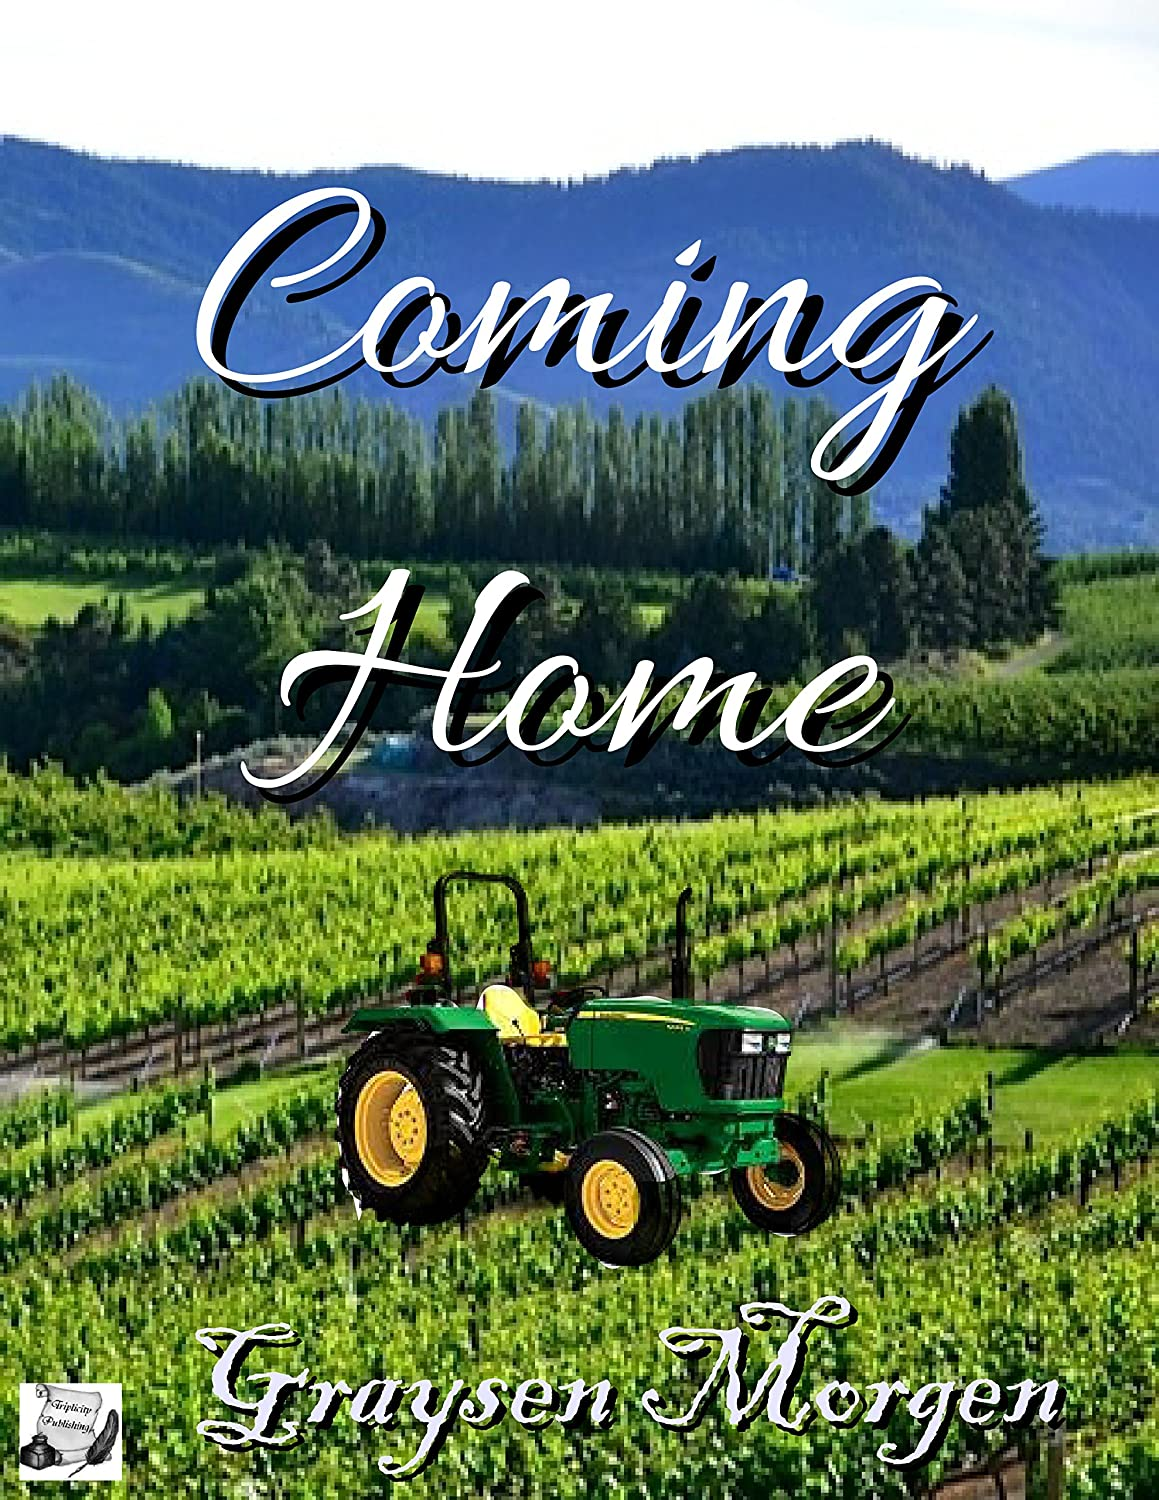 coming home谱子